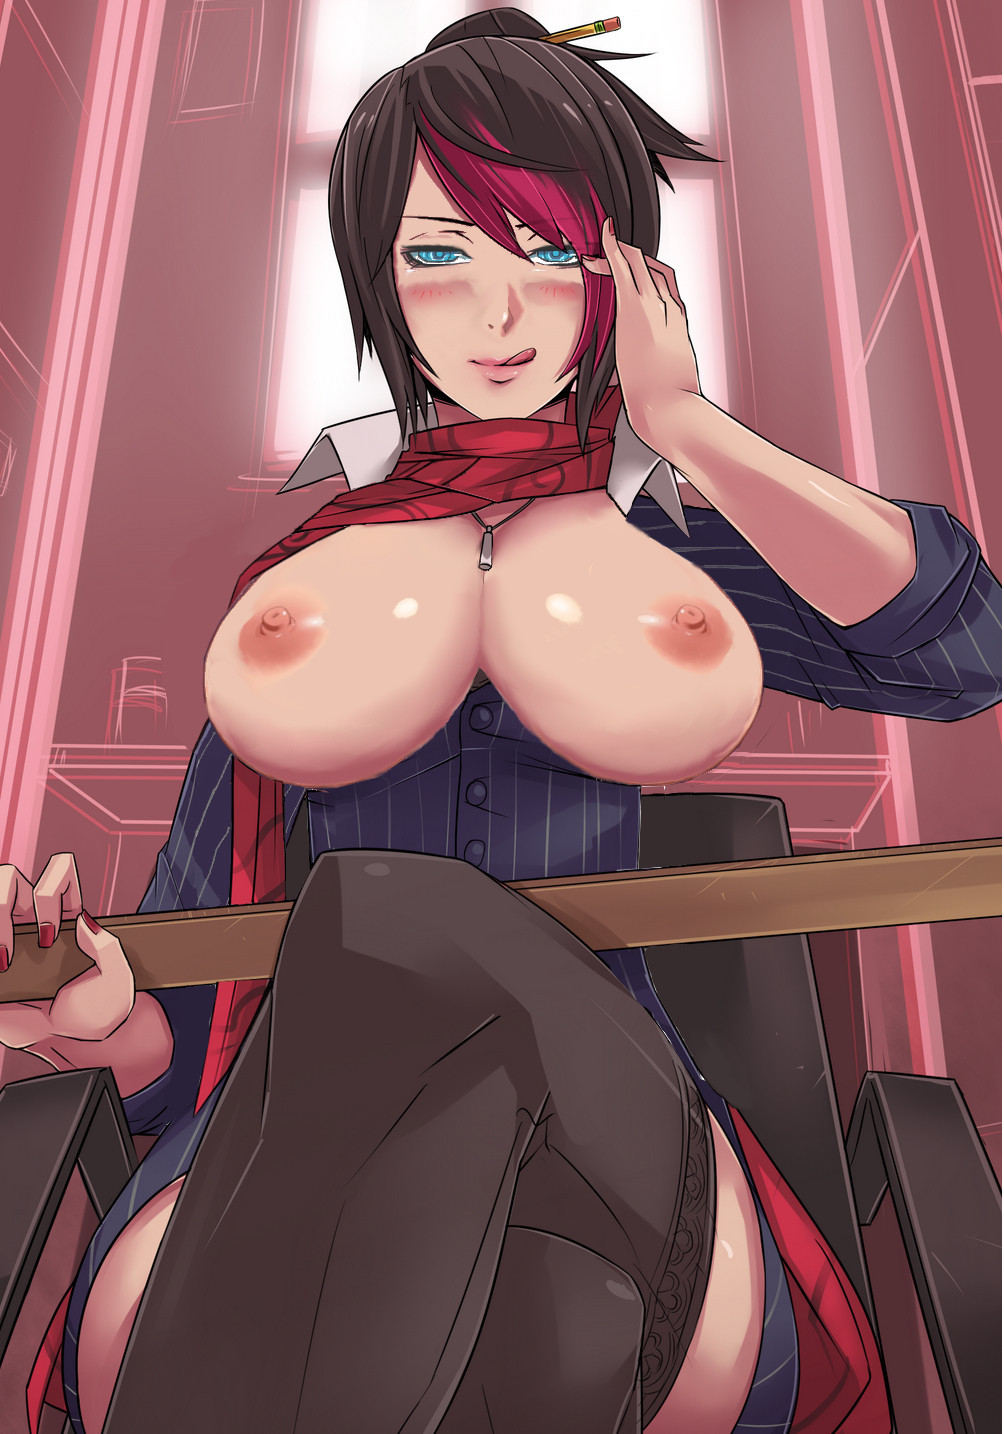 hentai-gets-revenge-on-headmistress-staphanie-macman-ass-naked